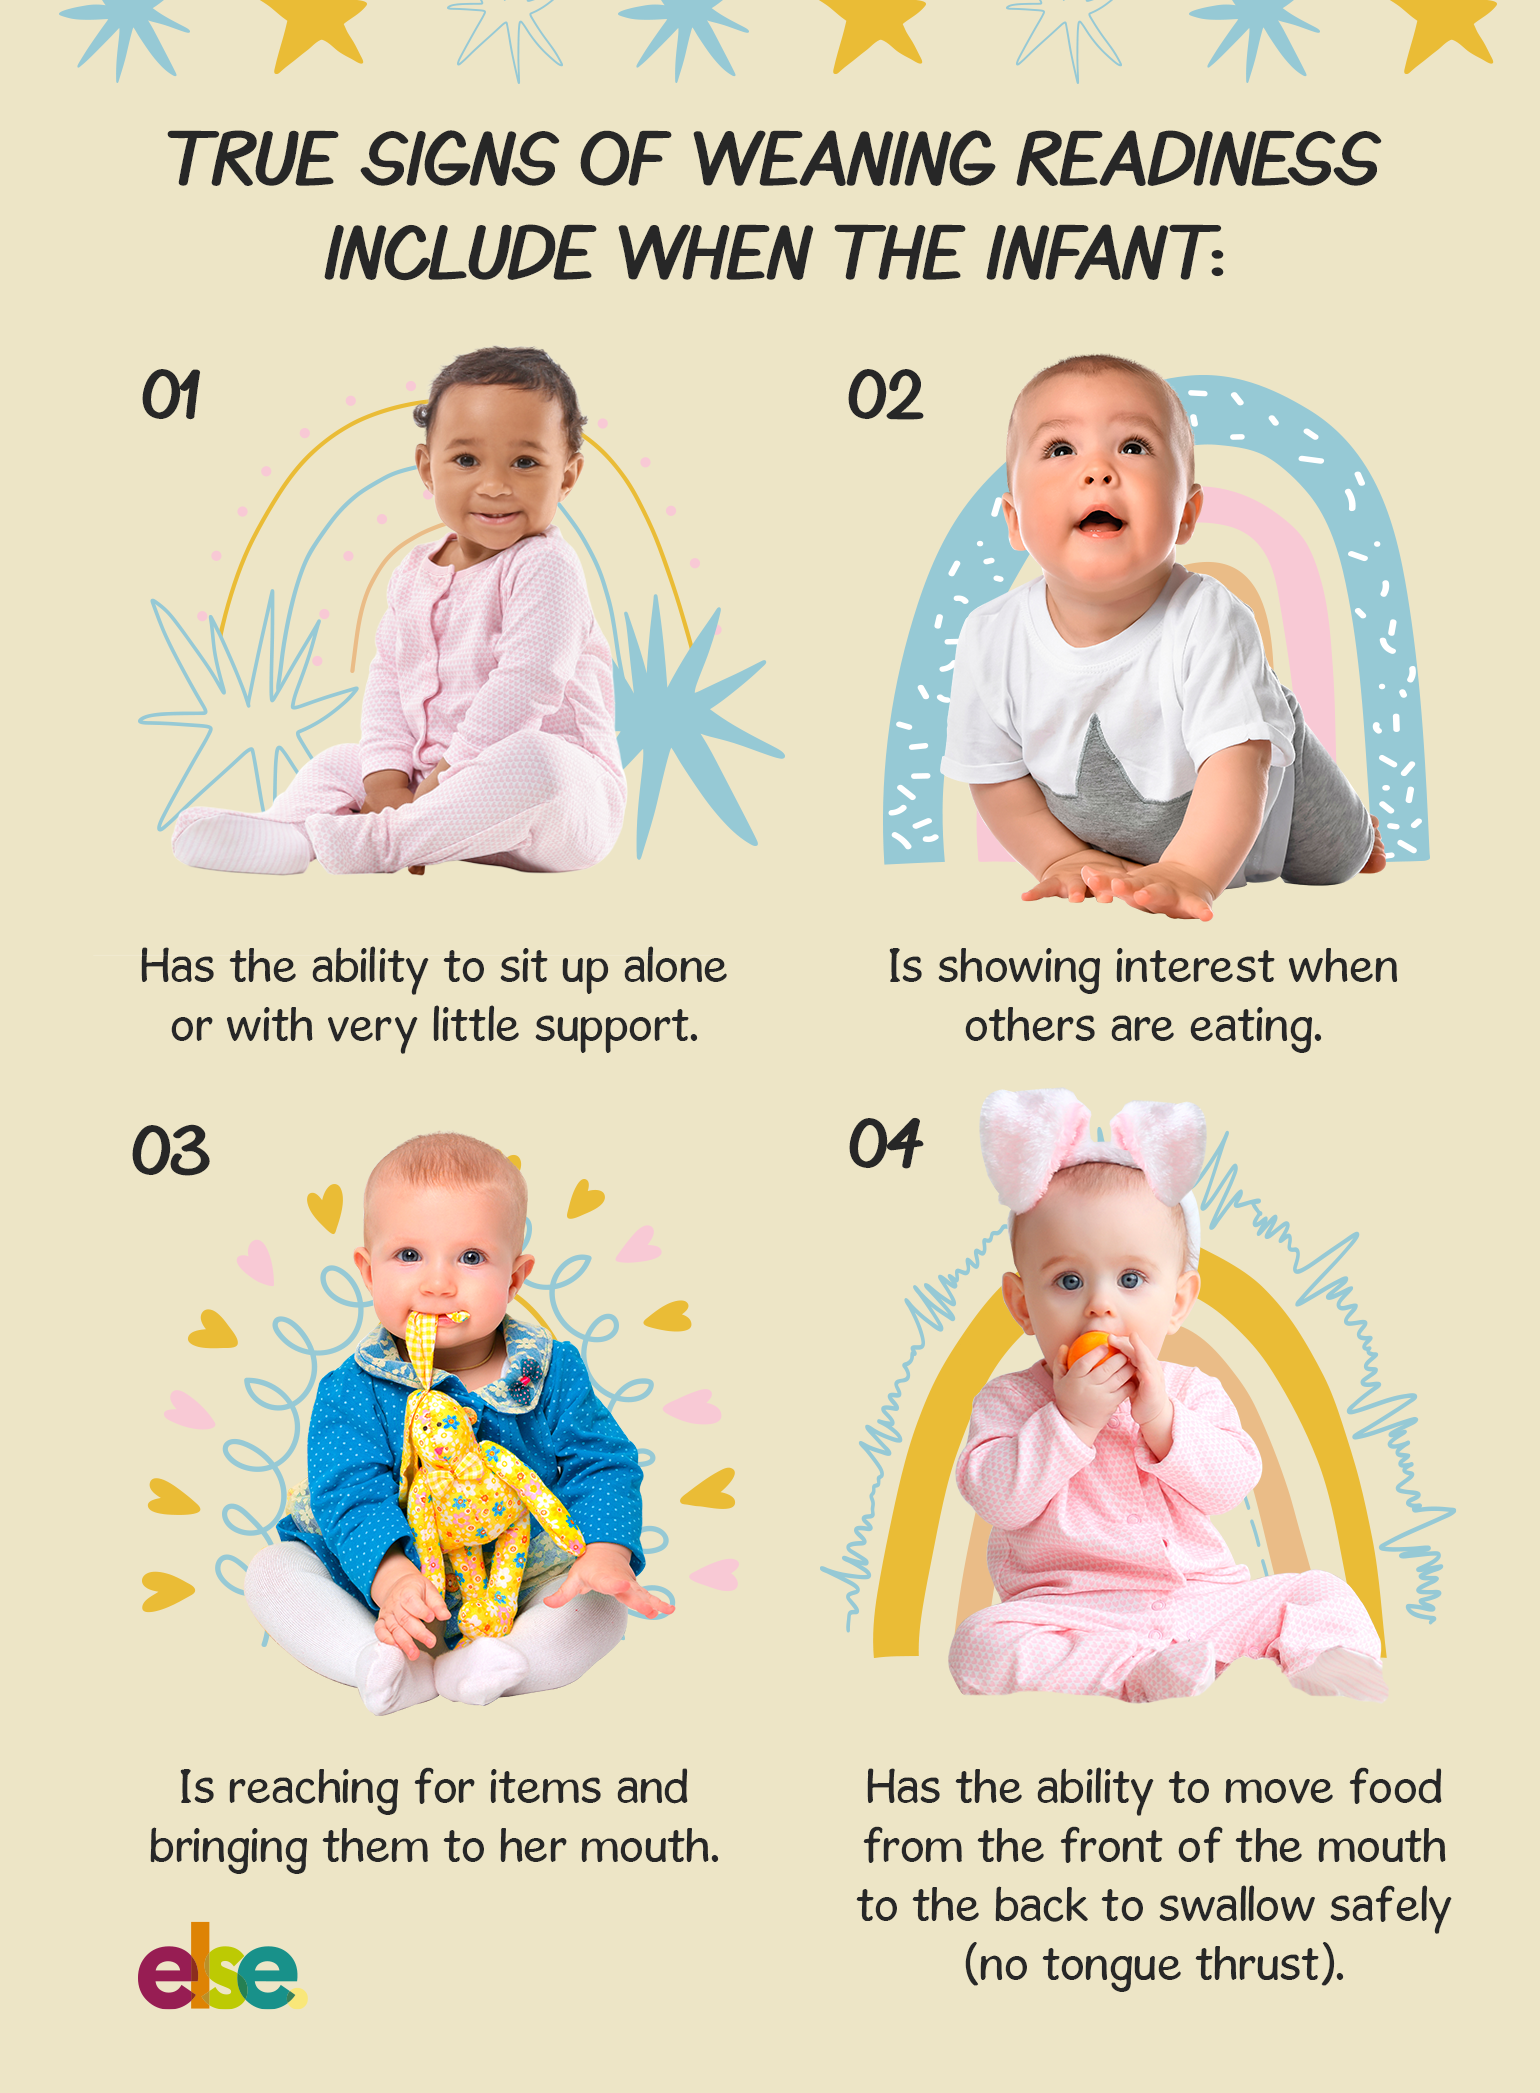 True signs of readiness include when the infant